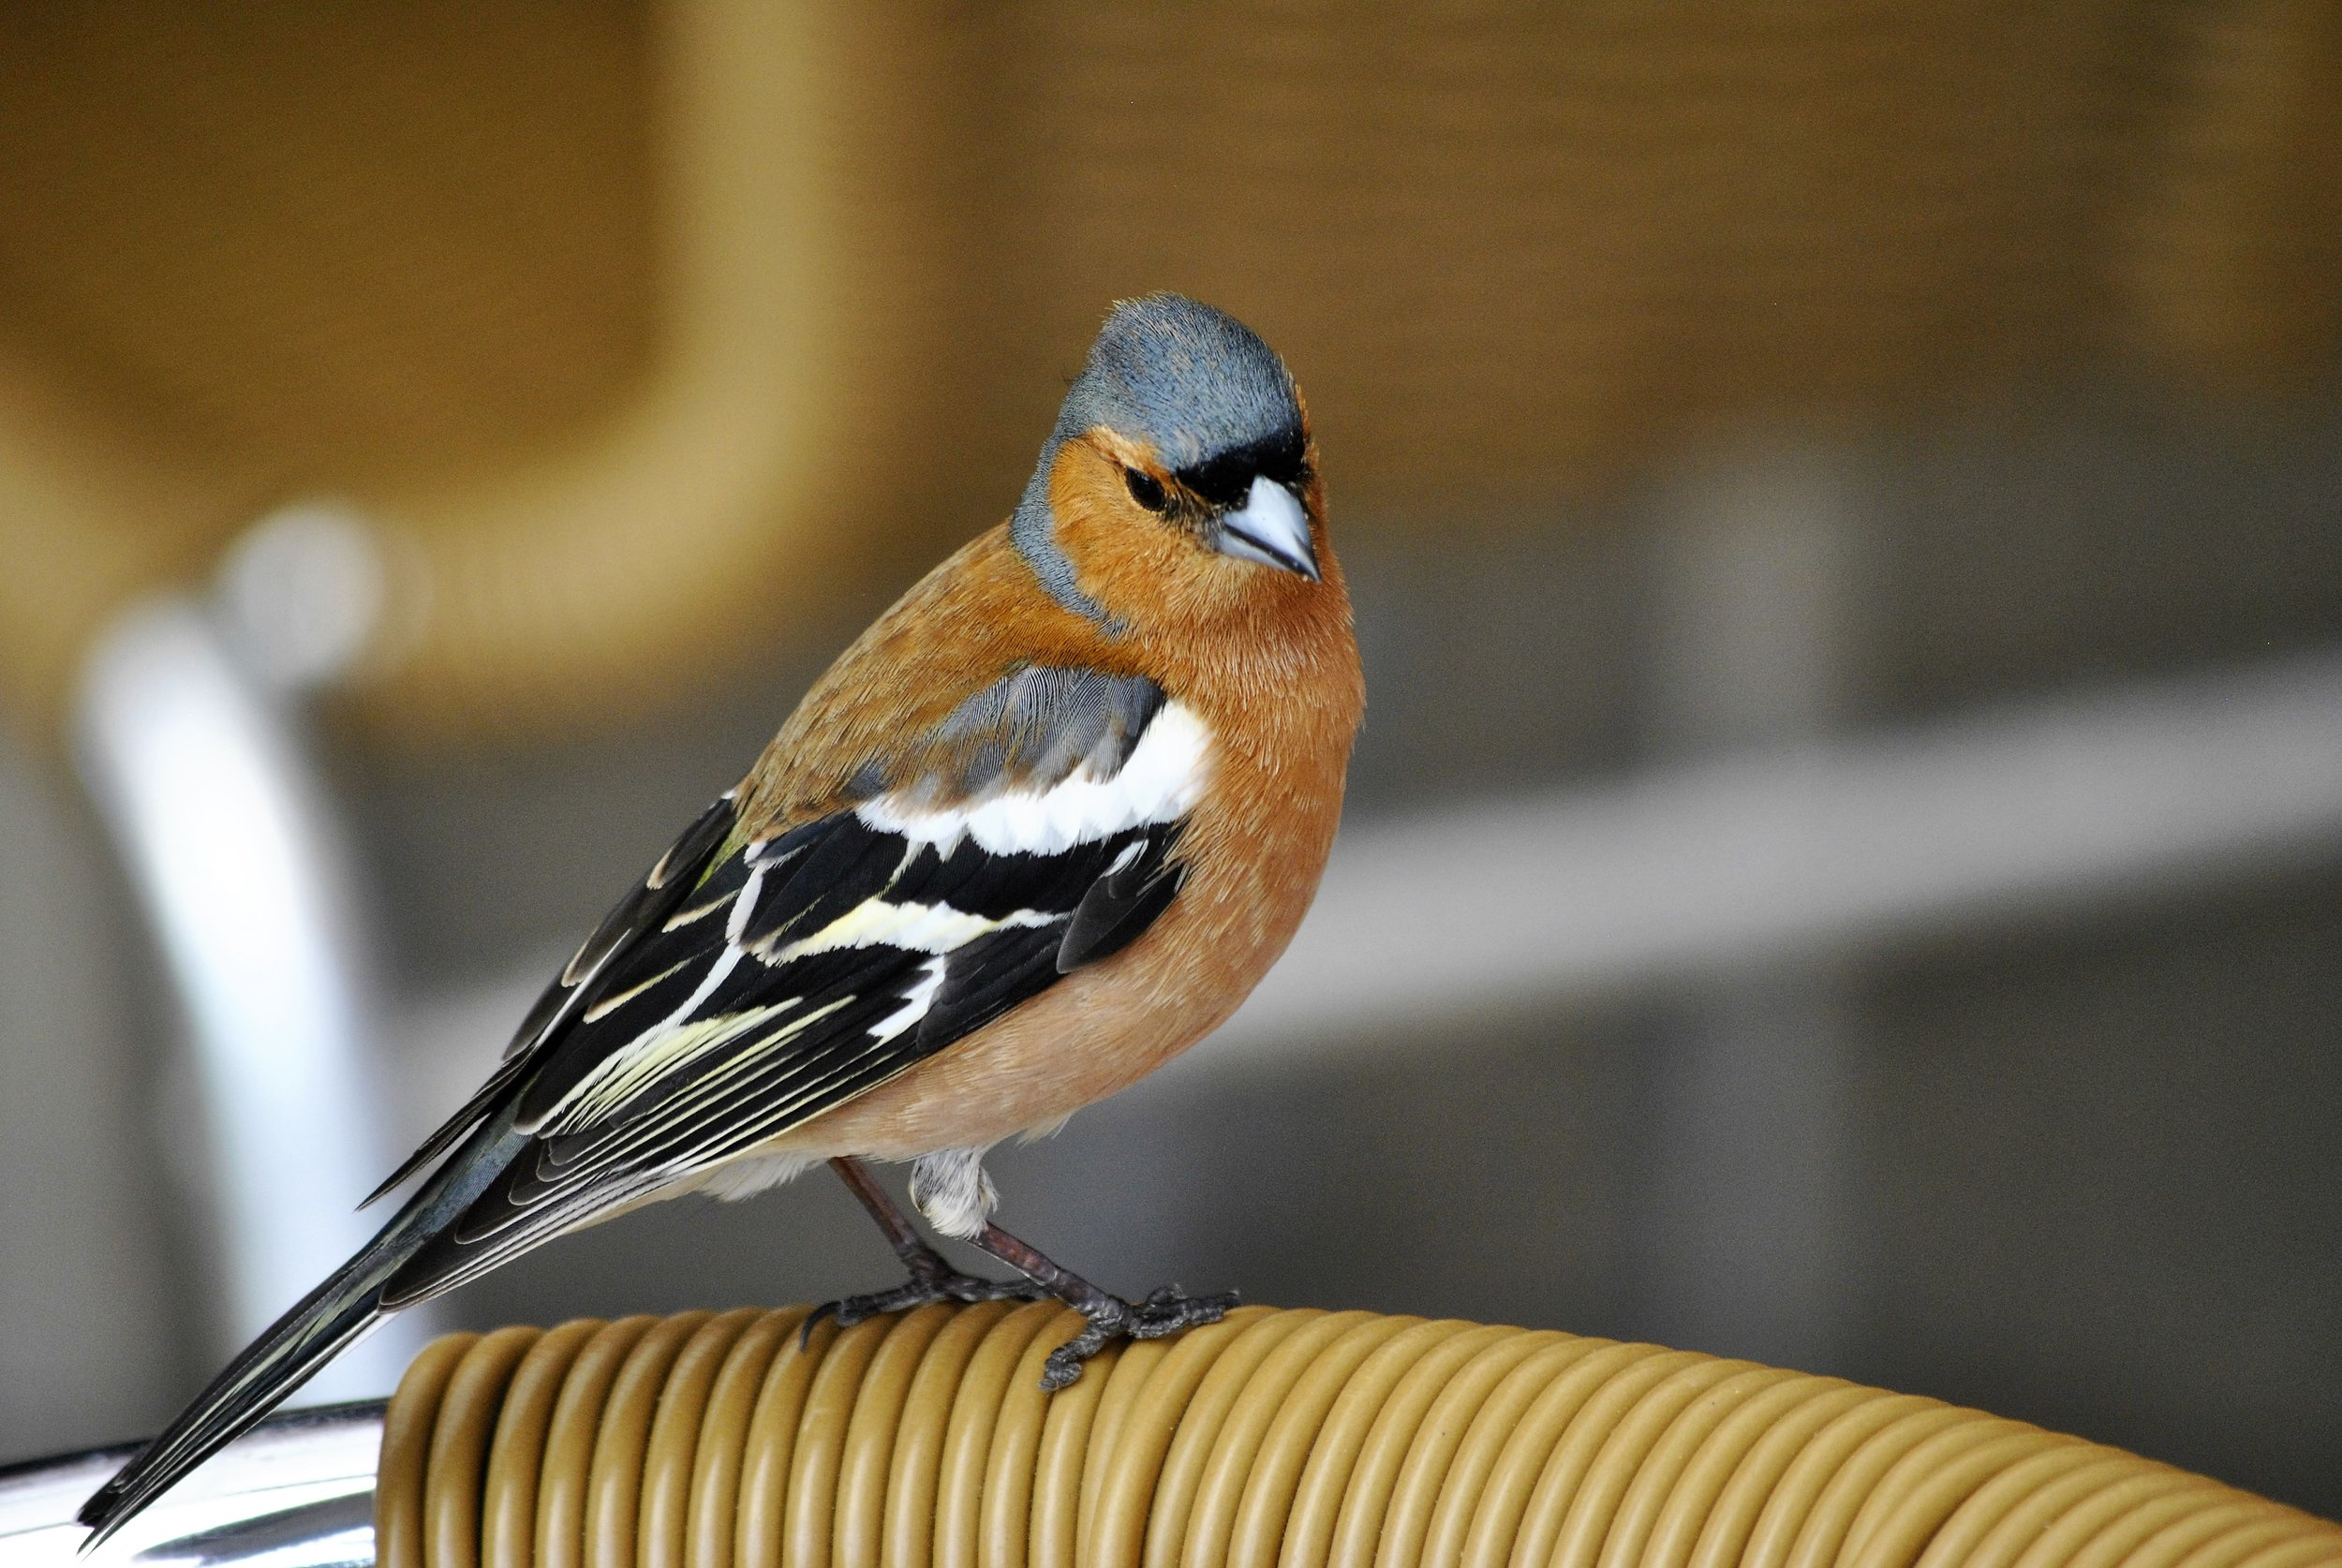 Chaffinch photograph from Ginger&Browns shop for dogs, cats and wildlife in Northwich, Cheshire.